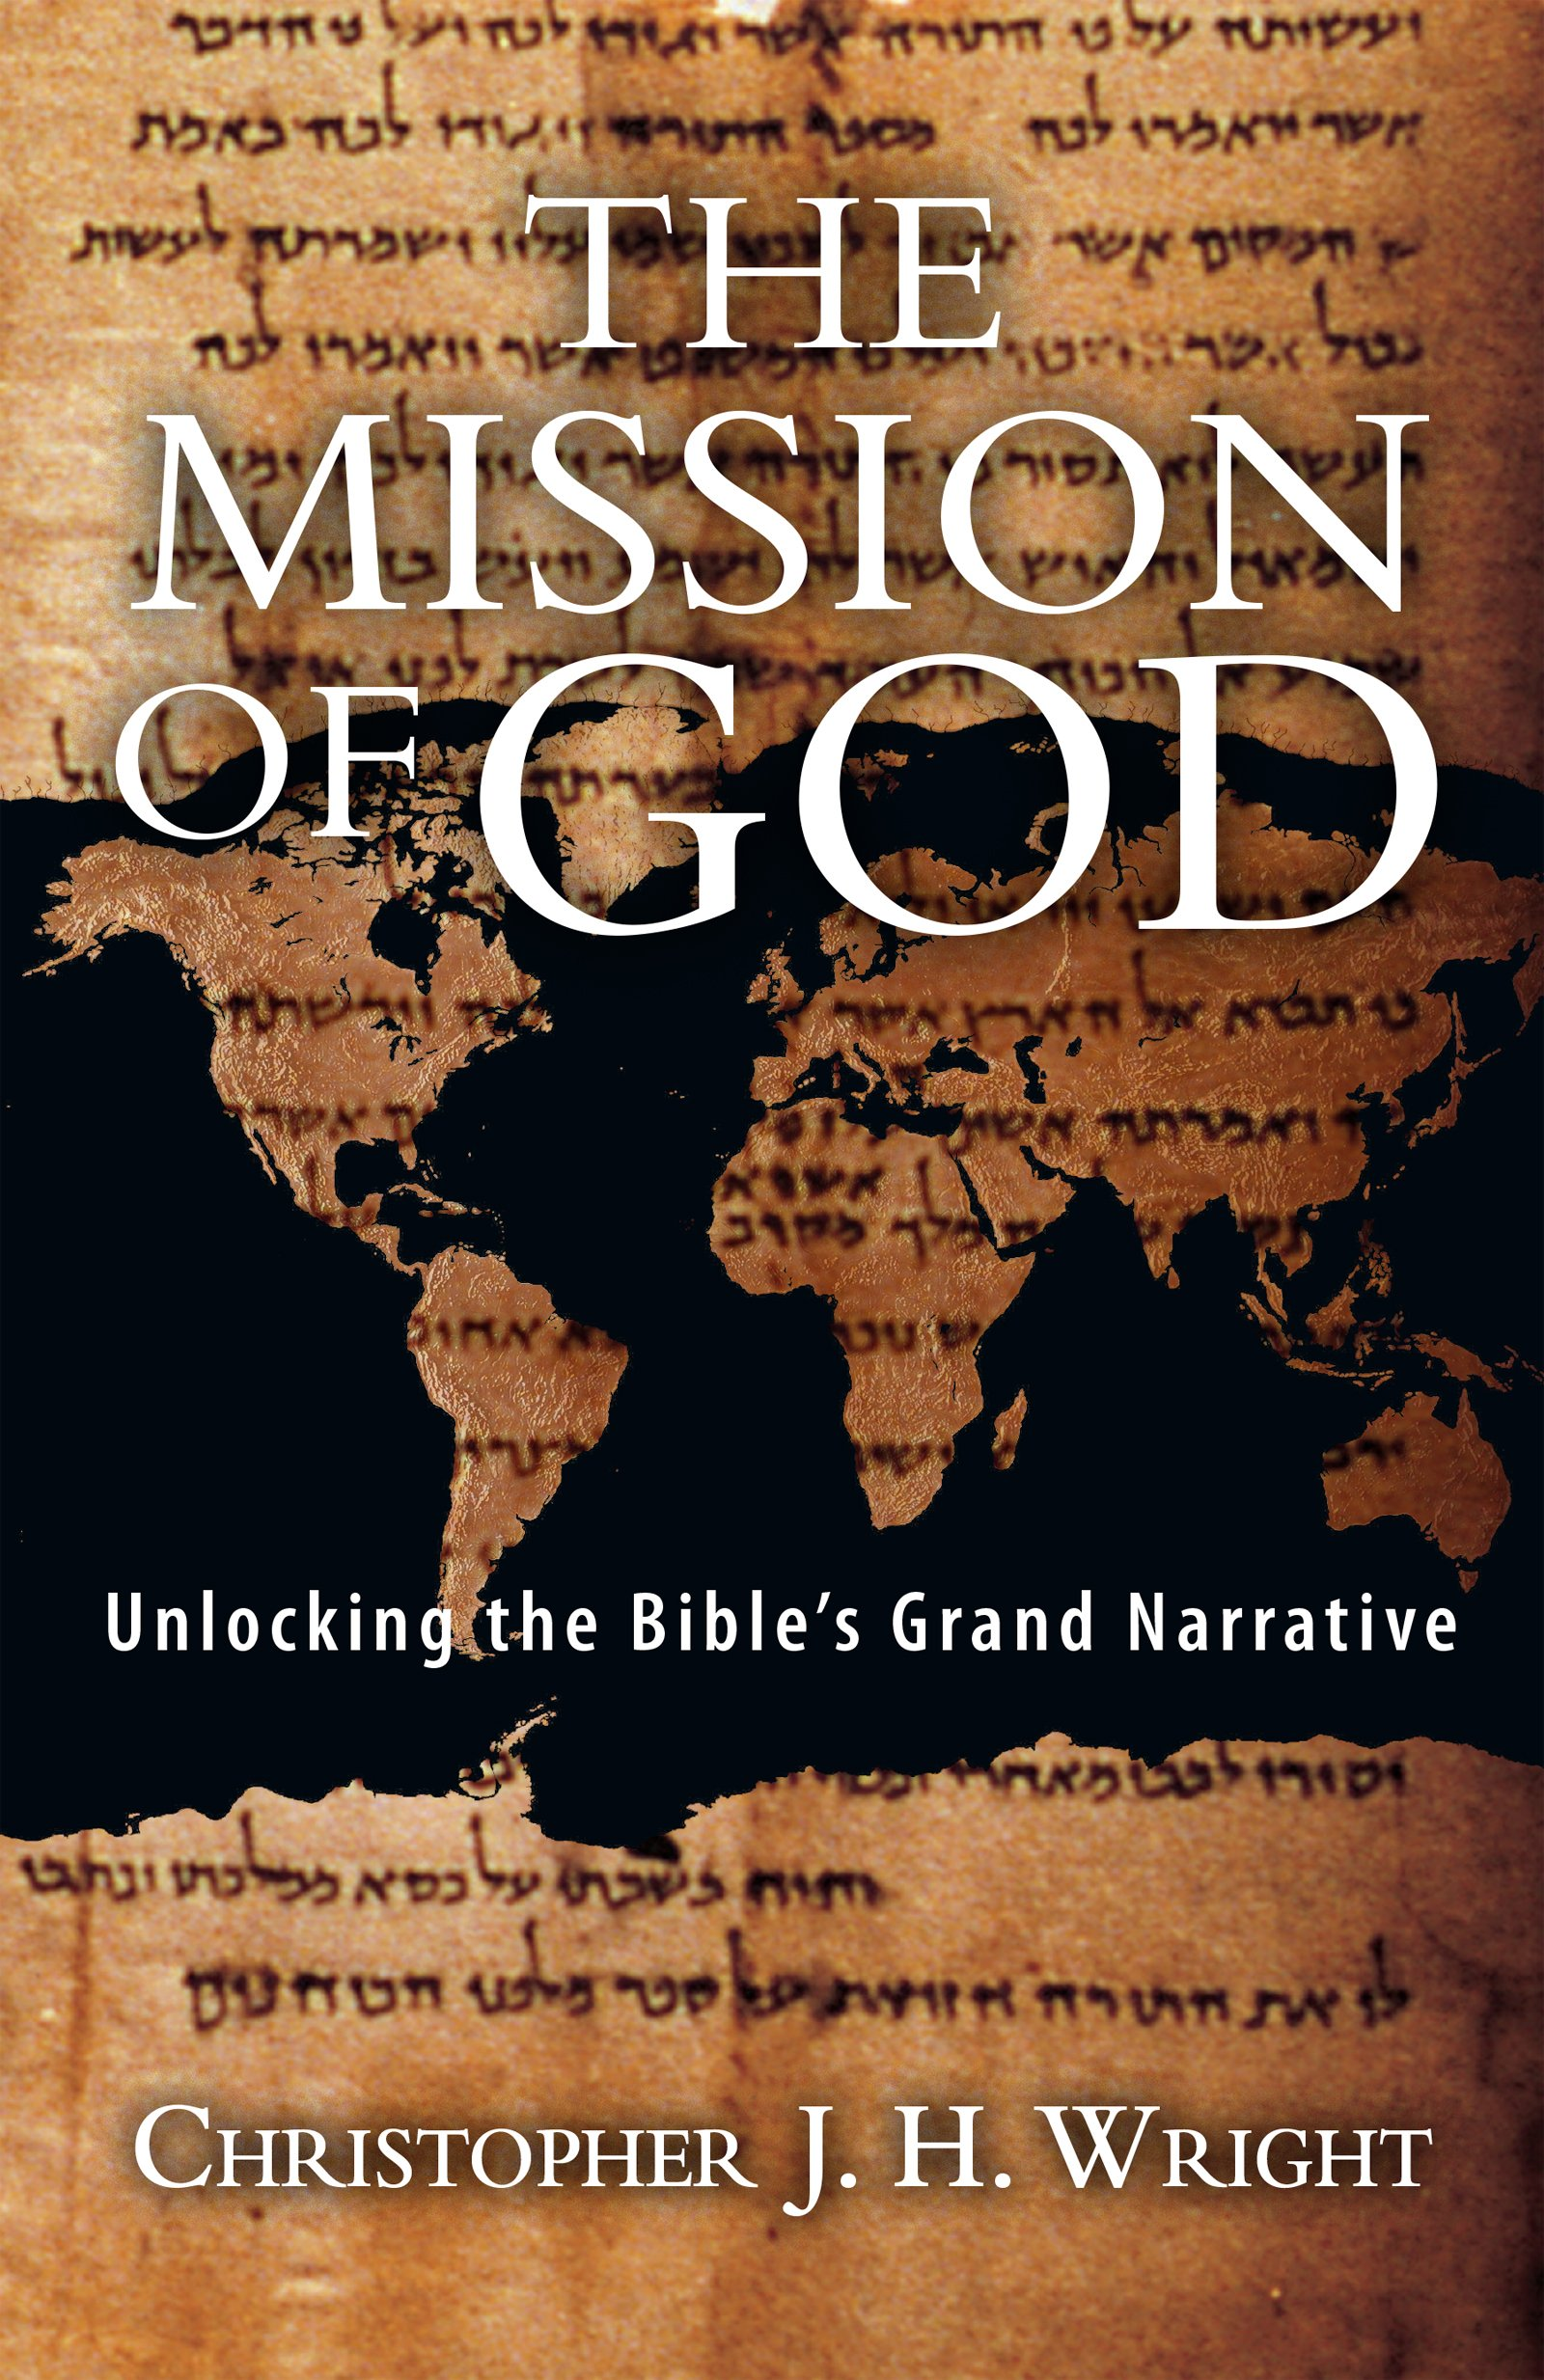 """3 Takeaways From """"The Mission of God"""""""